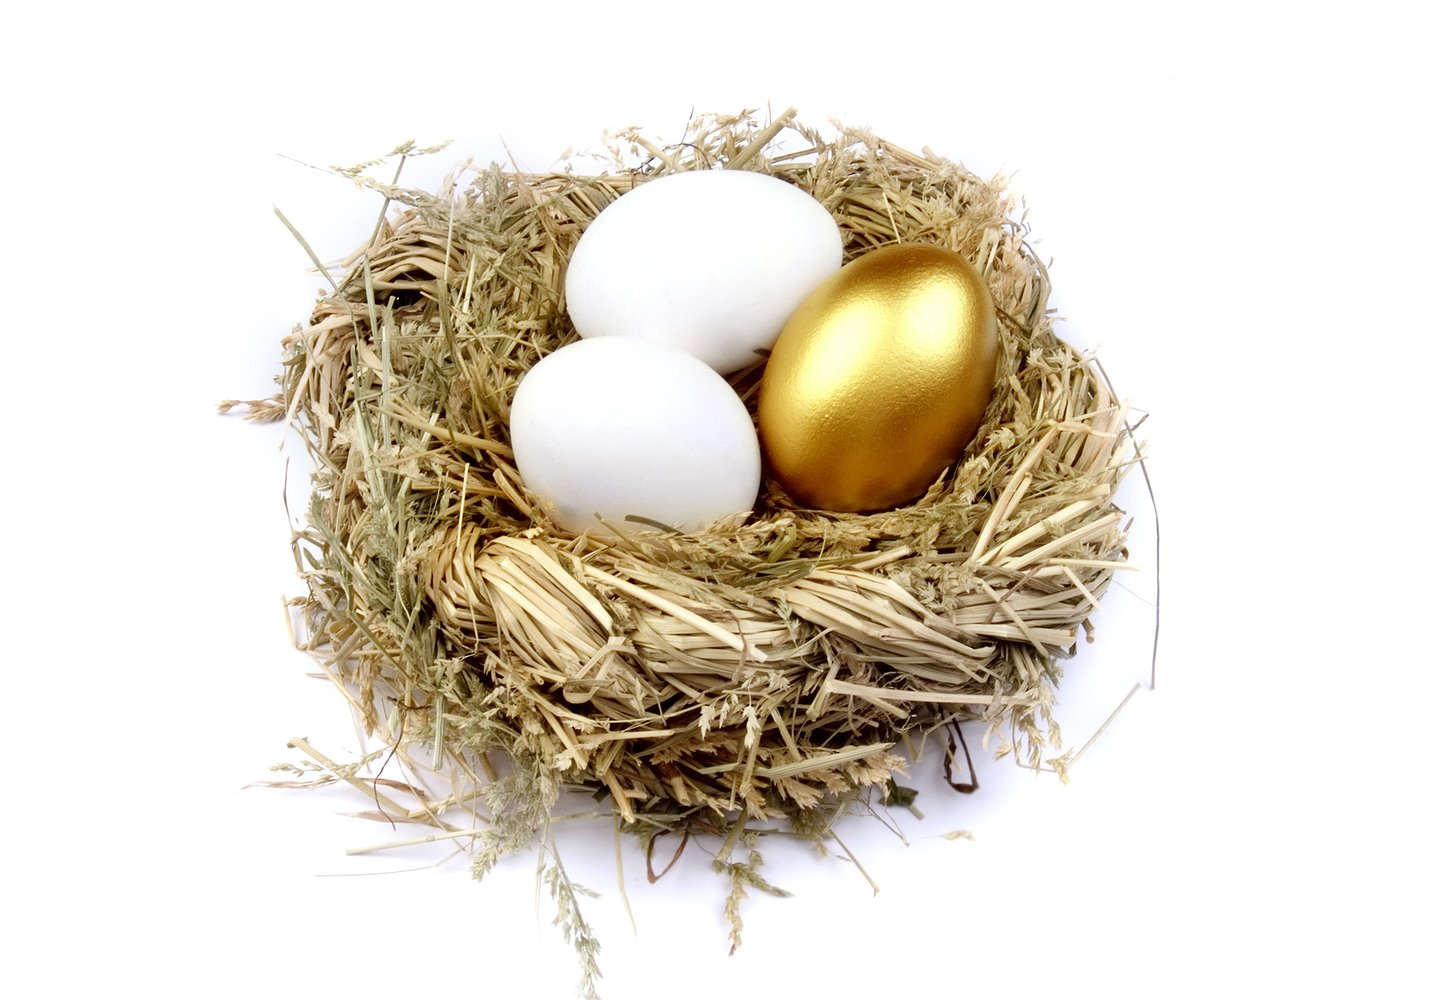 Quandary for Media Agencies: Golden Eggs from a Sick Goose